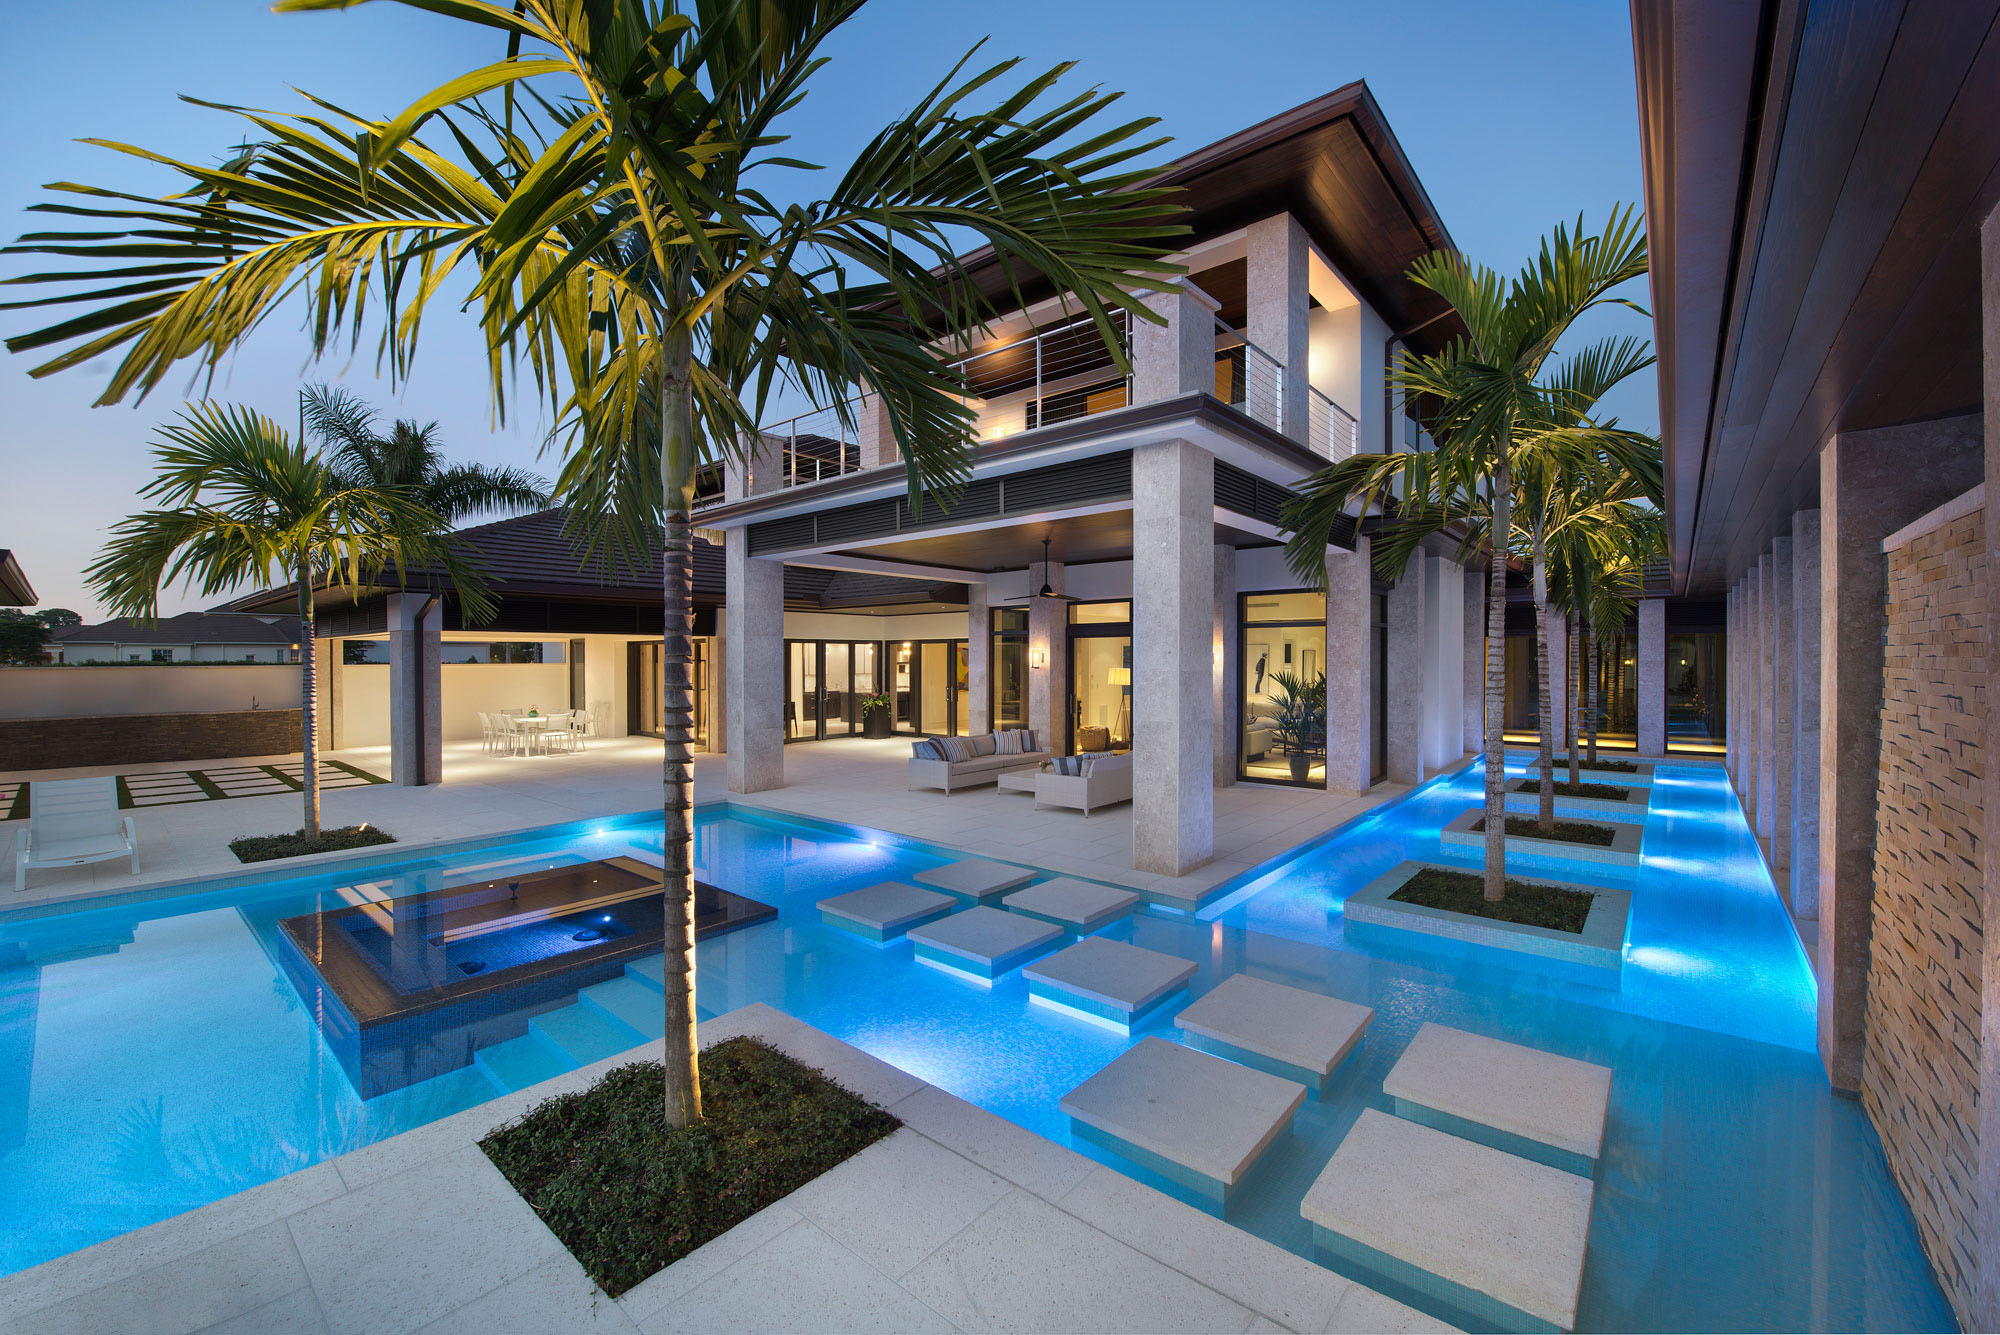 Custom dream home in florida with elegant swimming pool Home design dream house